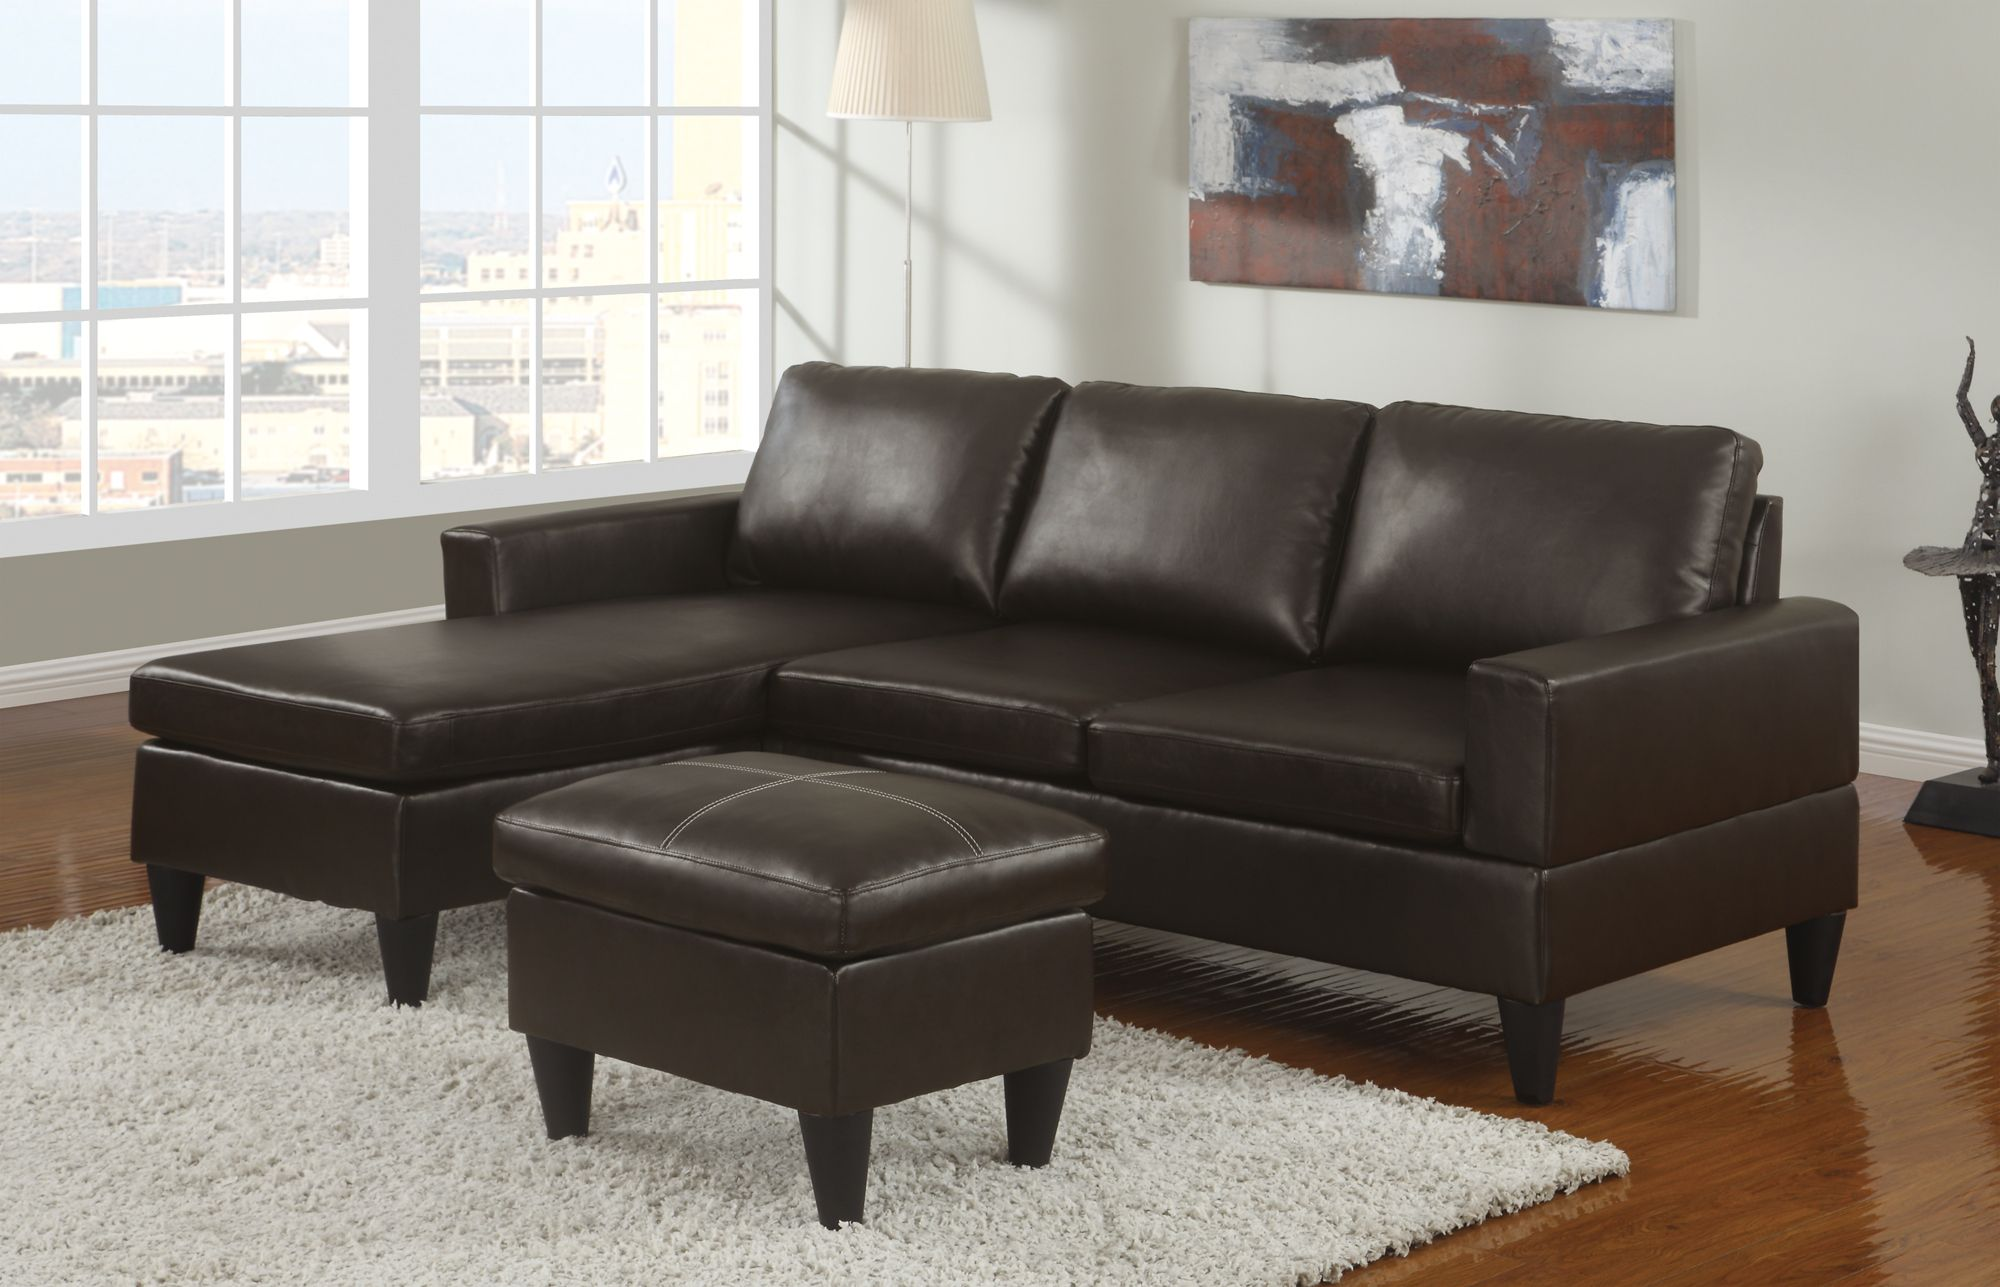 Sausalito Espresso Leather Small Sectional Sofa Set At Gowfb Ca Urban Cali This Might Be T Small Leather Sofa Small Space Sectional Sofa Leather Chaise Sofa